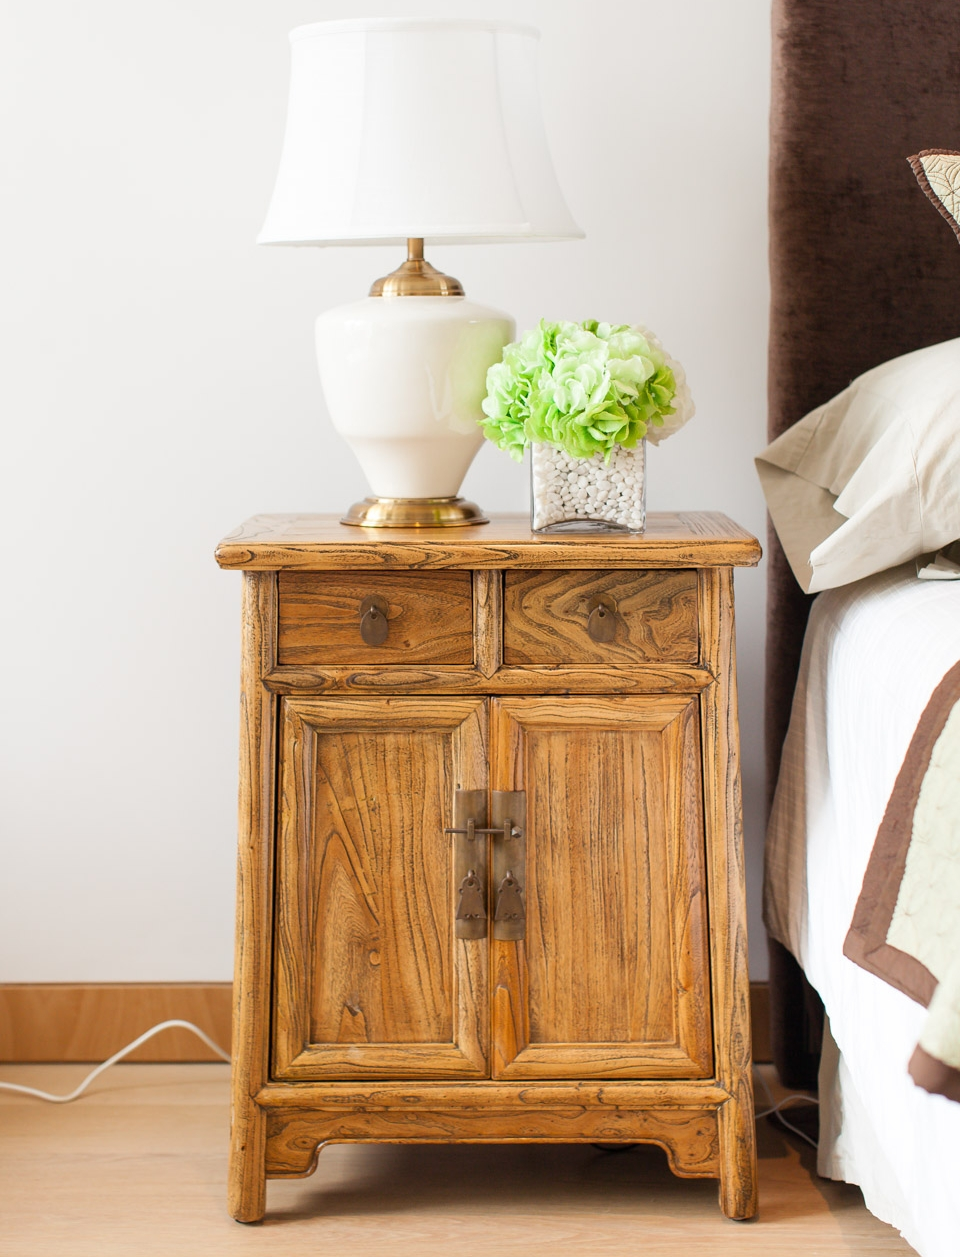 Weathered Elm bedside table. Styling & photo courtesy of Arete Culture